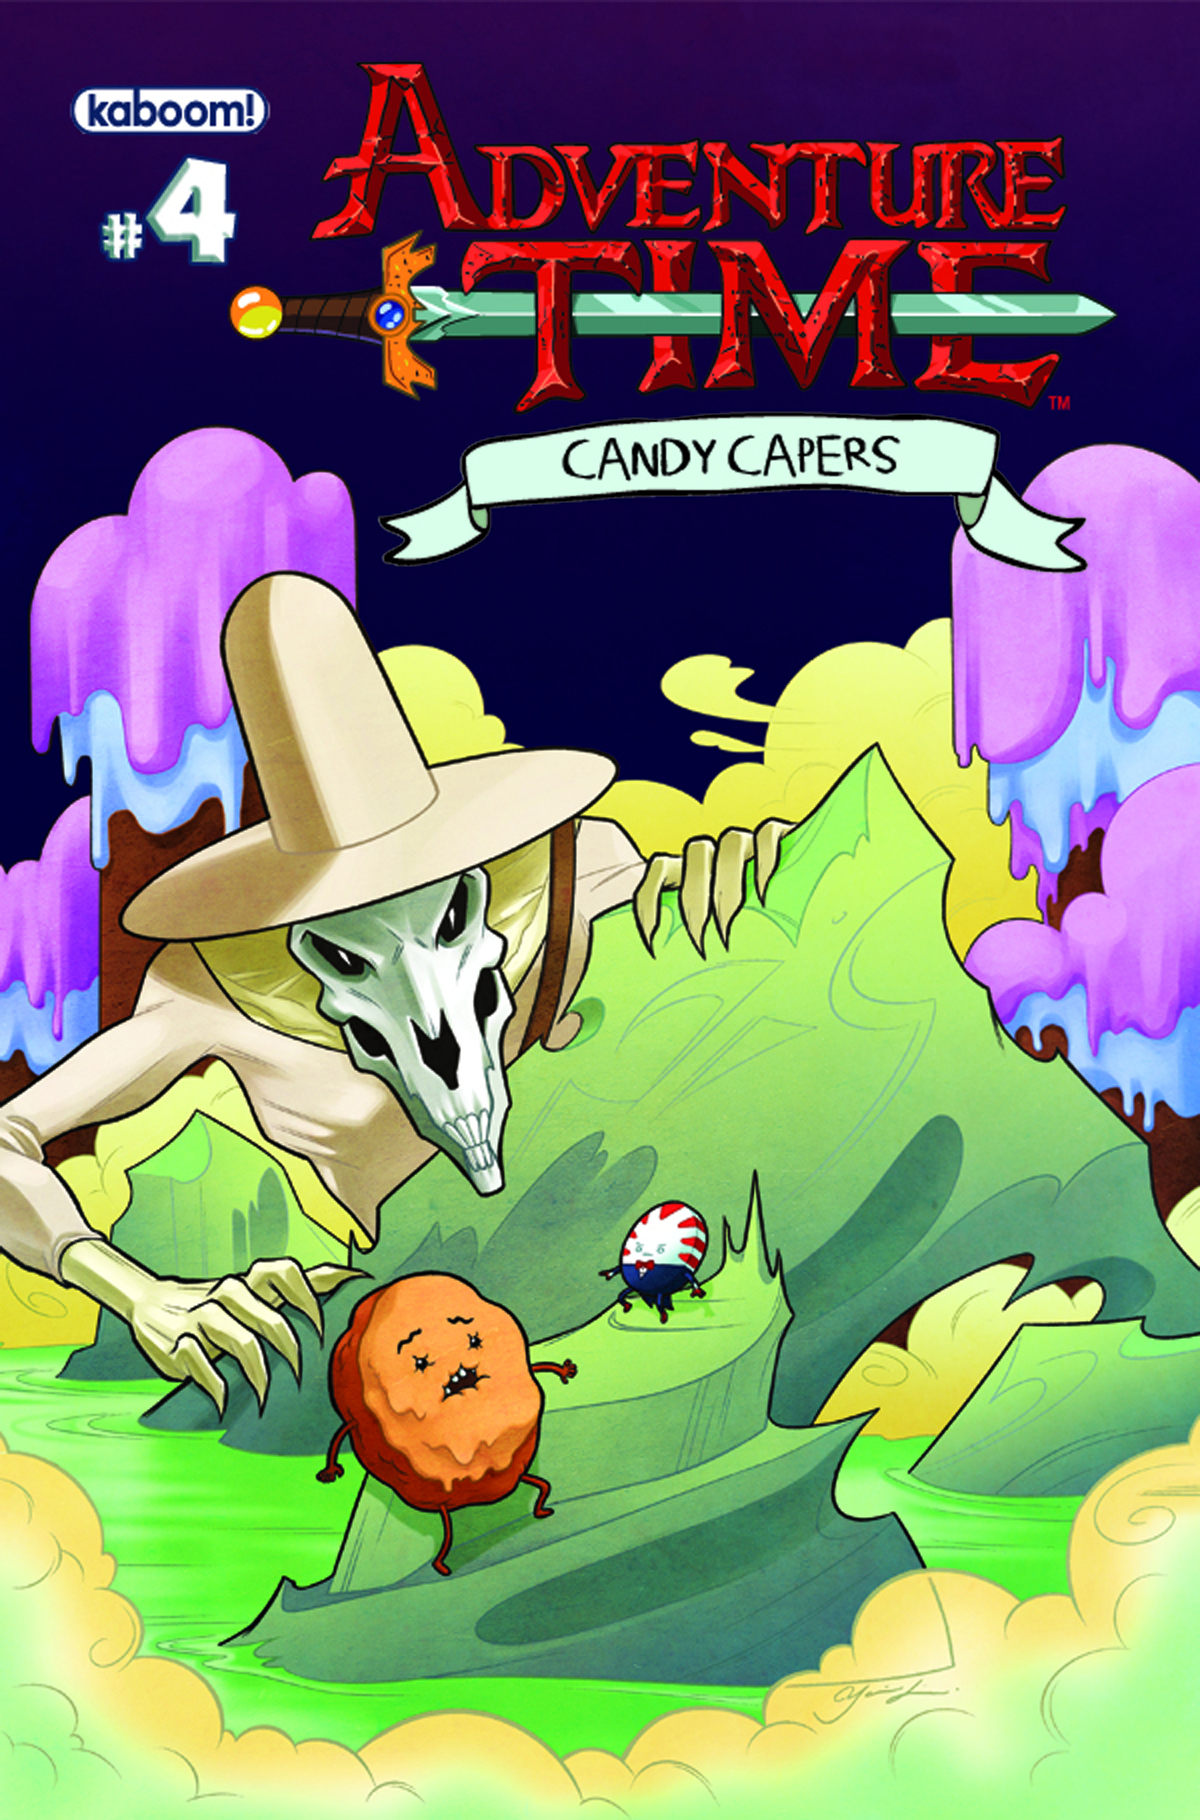 ADVENTURE TIME CANDY CAPERS #4